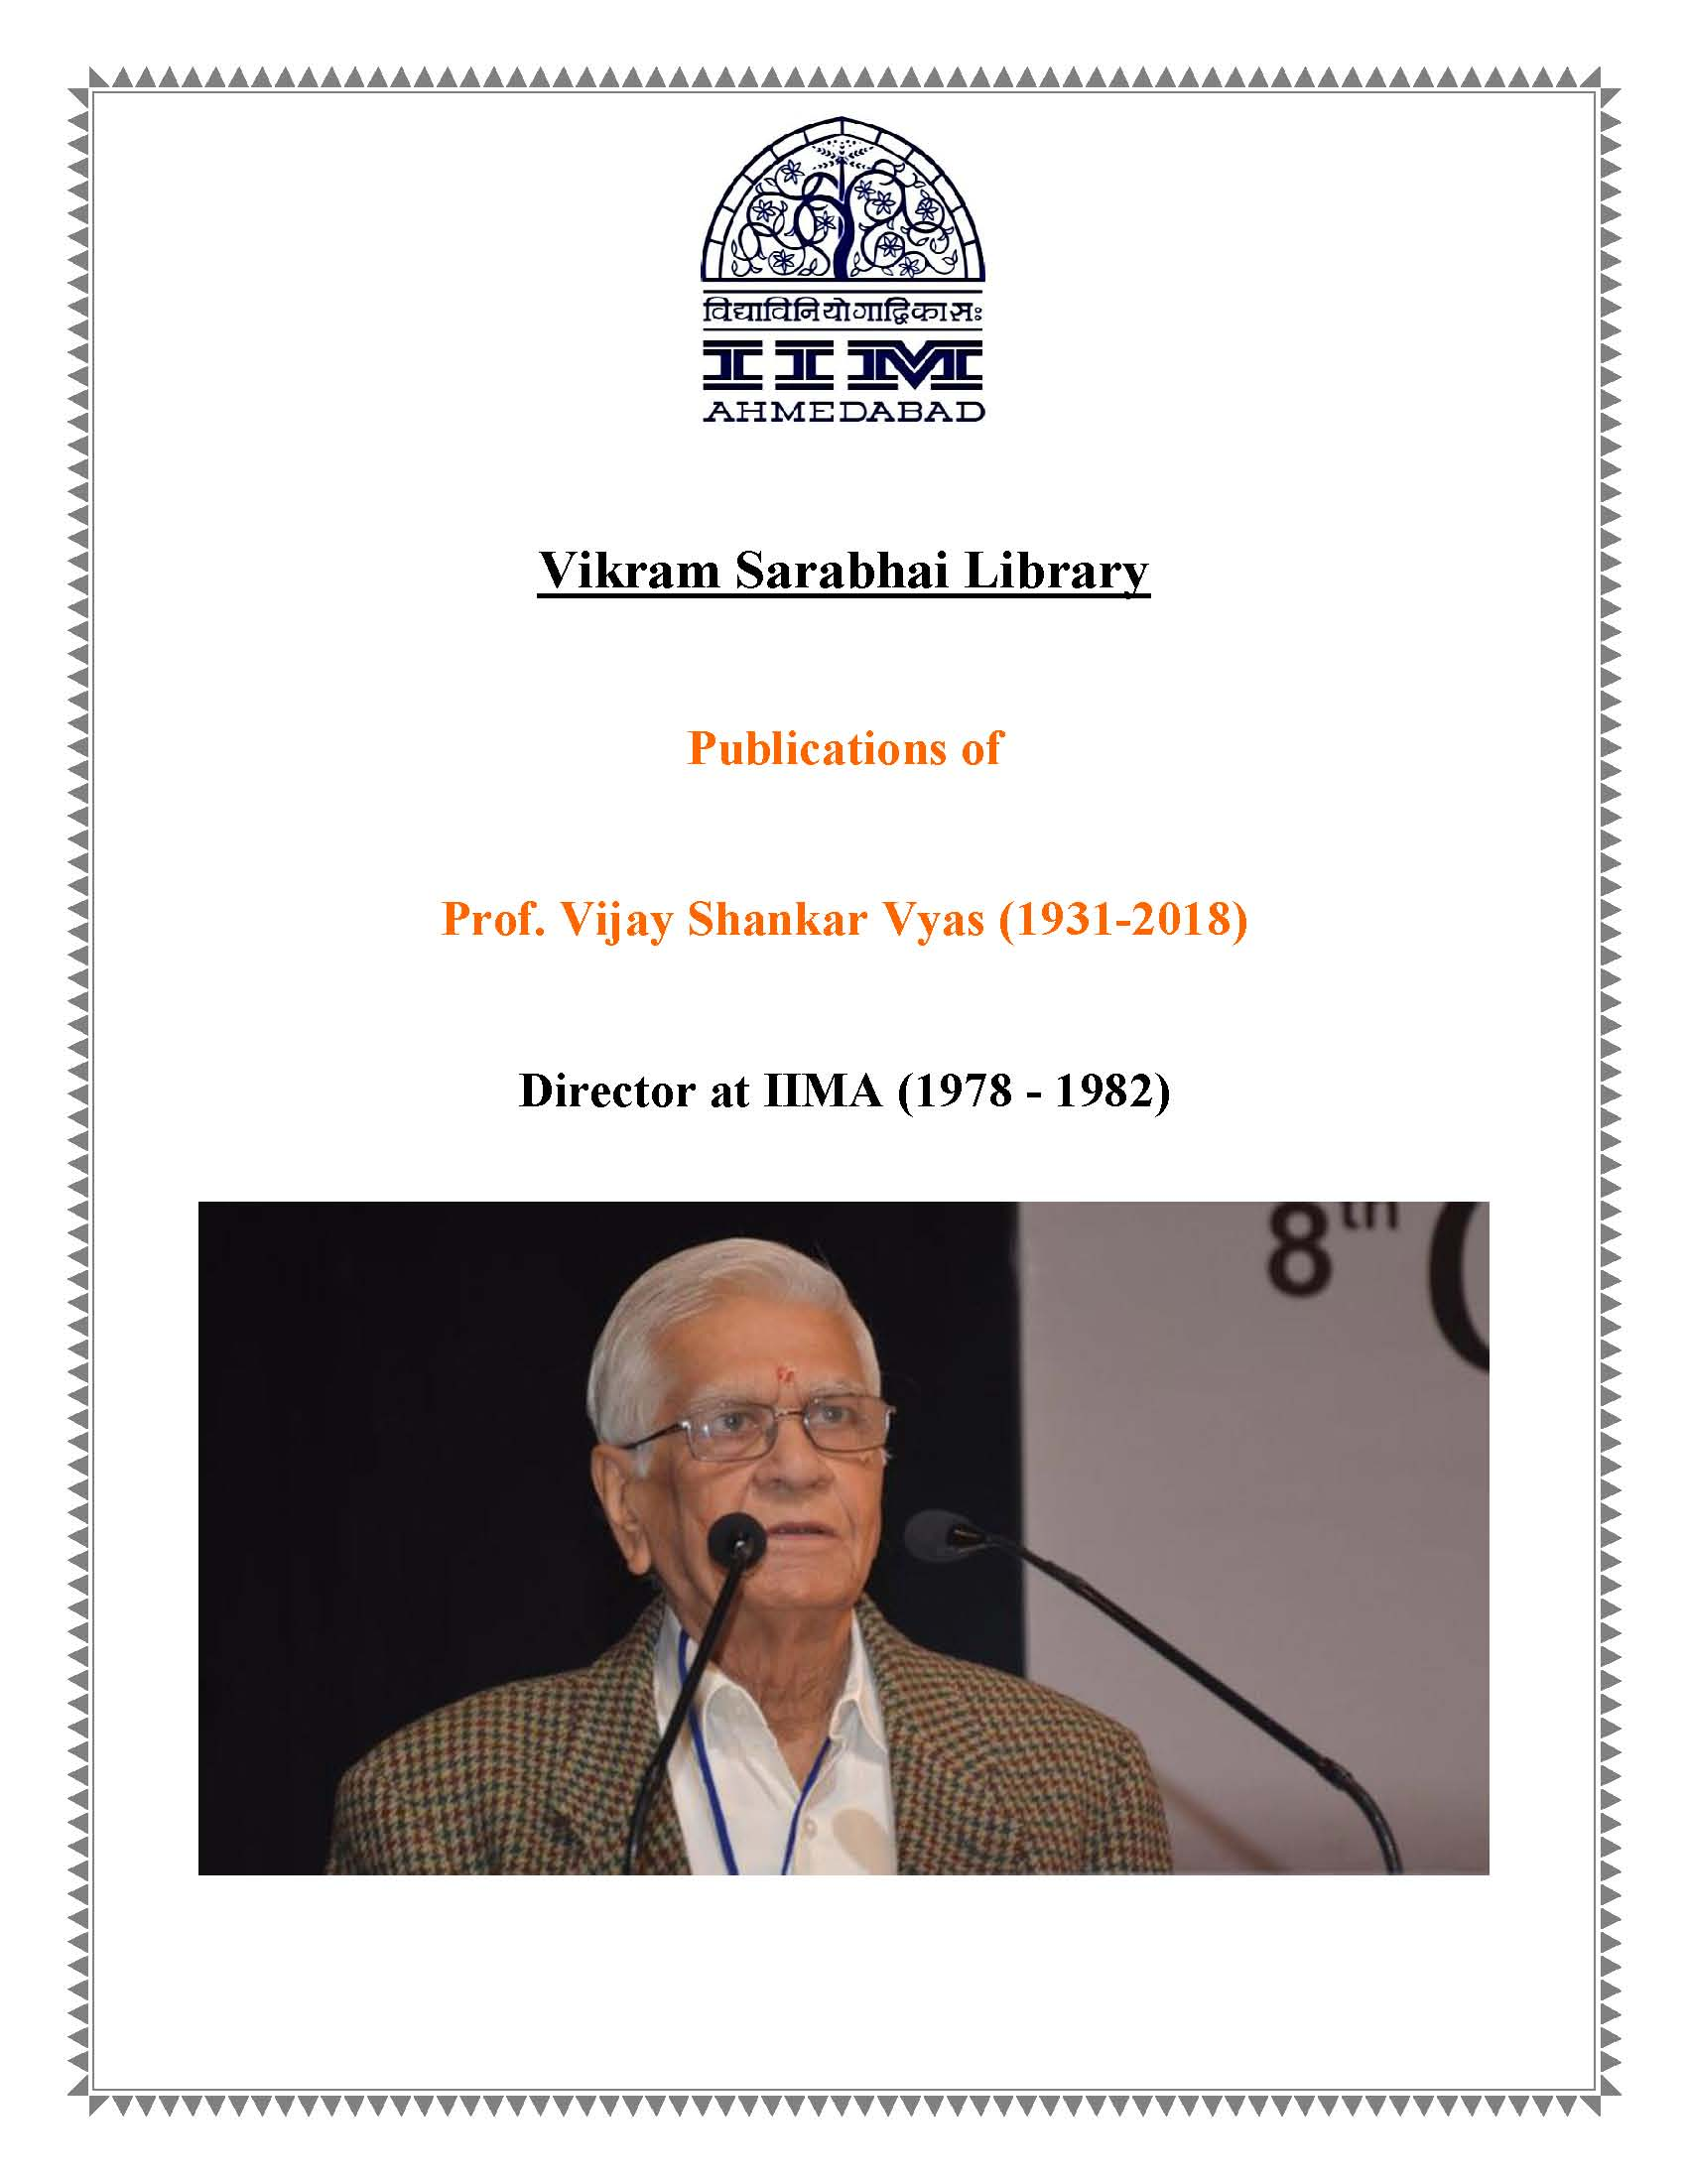 Display of Books of Professor Vijay Shankar Vyas